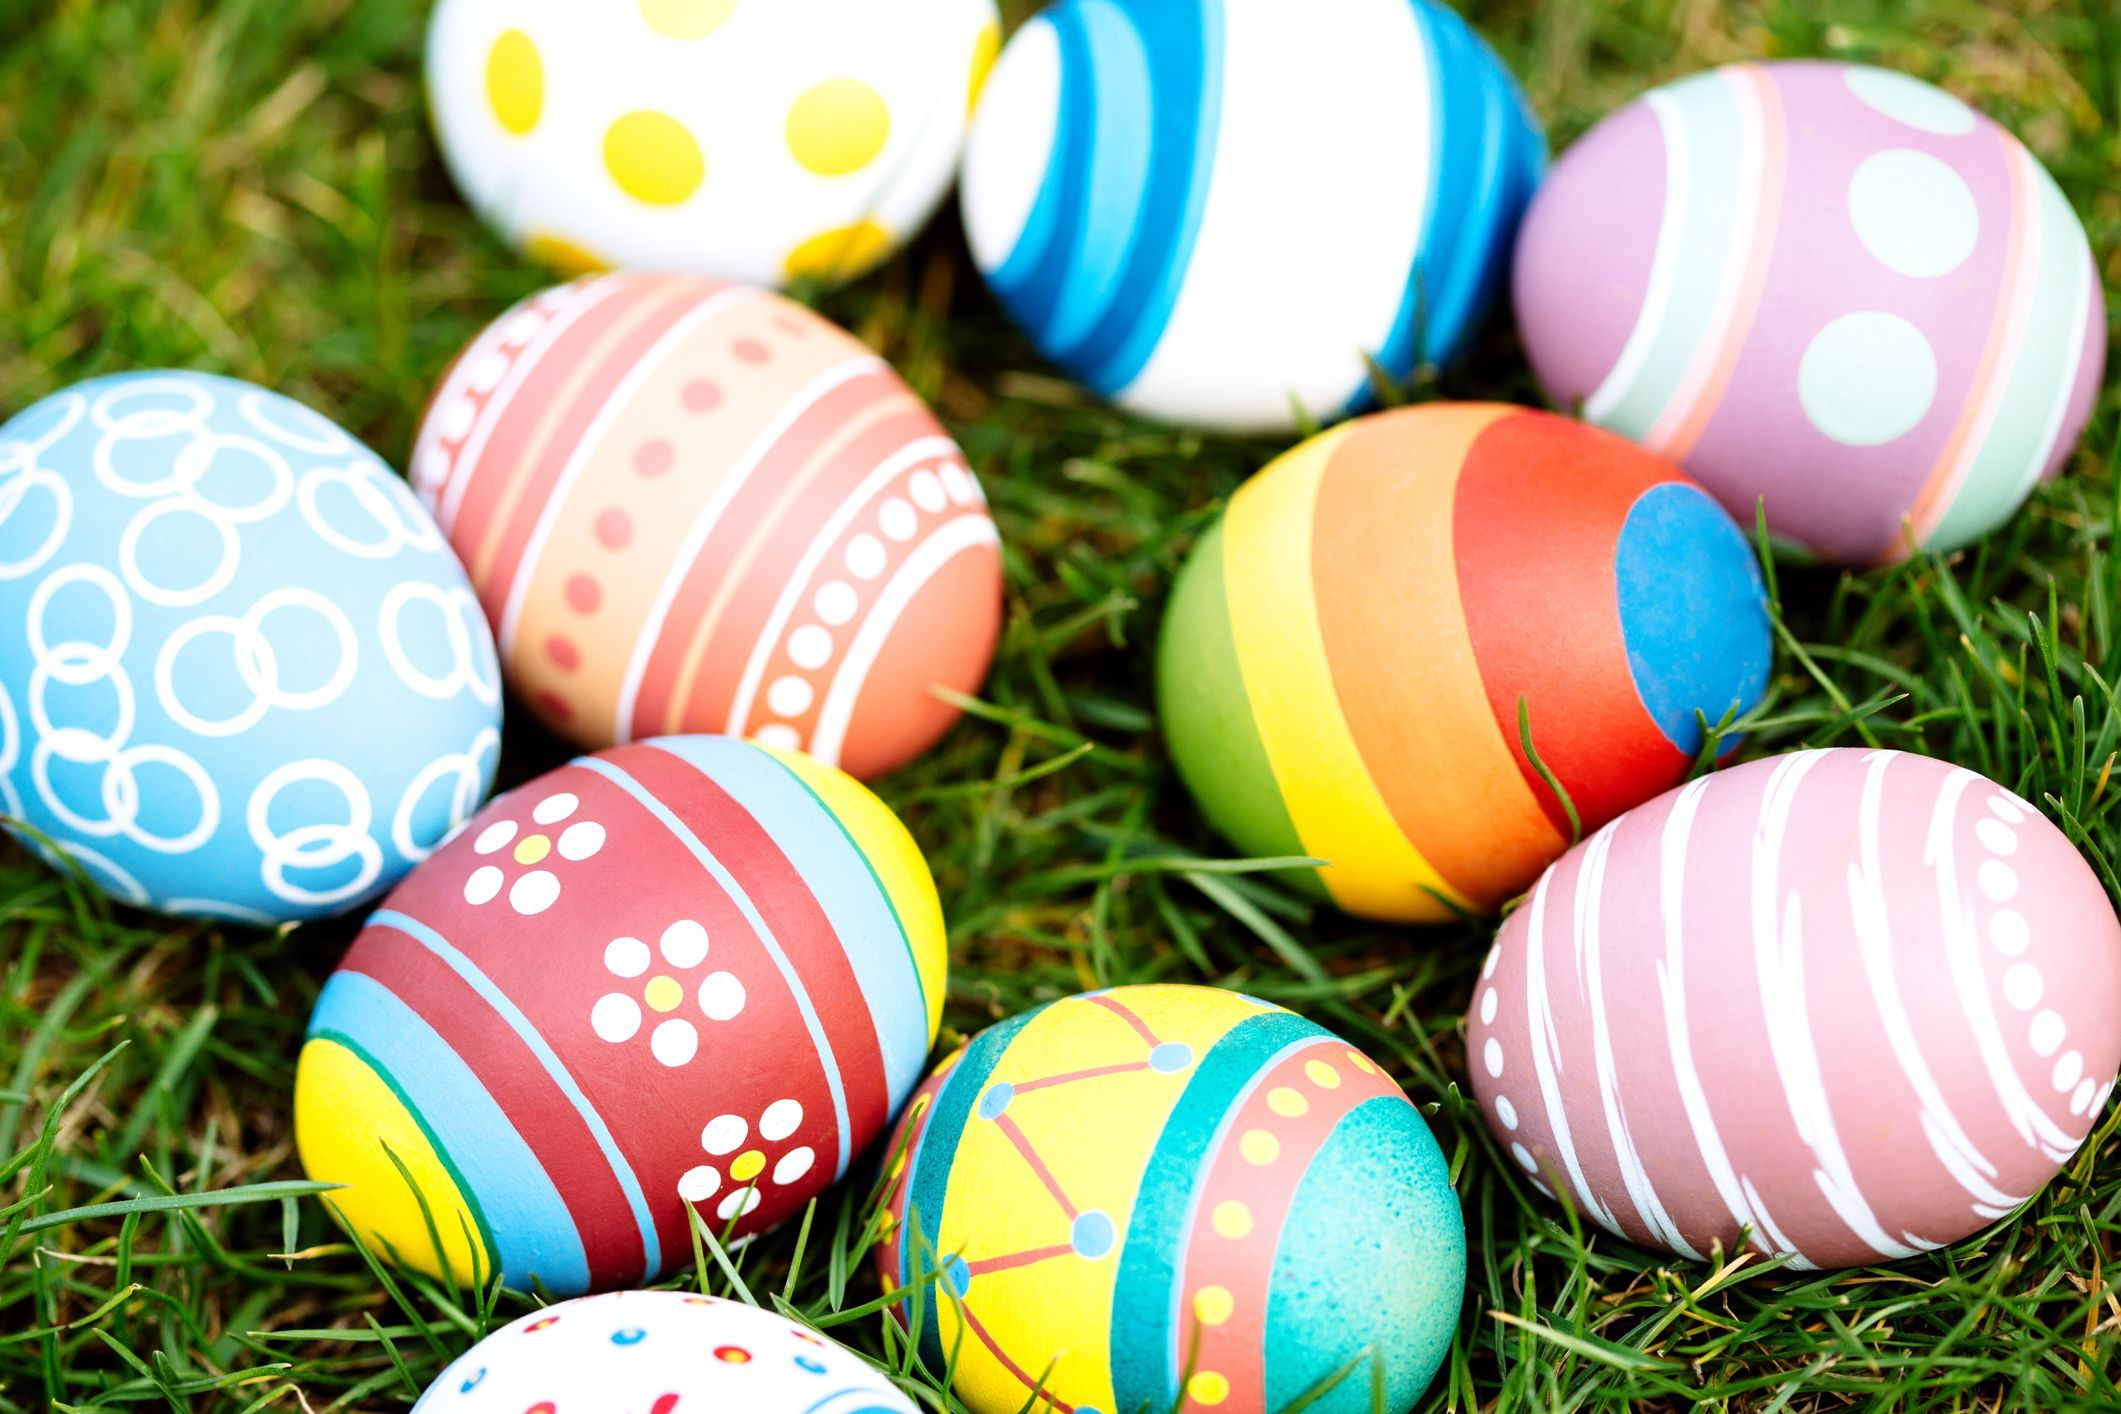 colorful-easter-eggs-royalty-free-image-534890729-1551194622.jpg